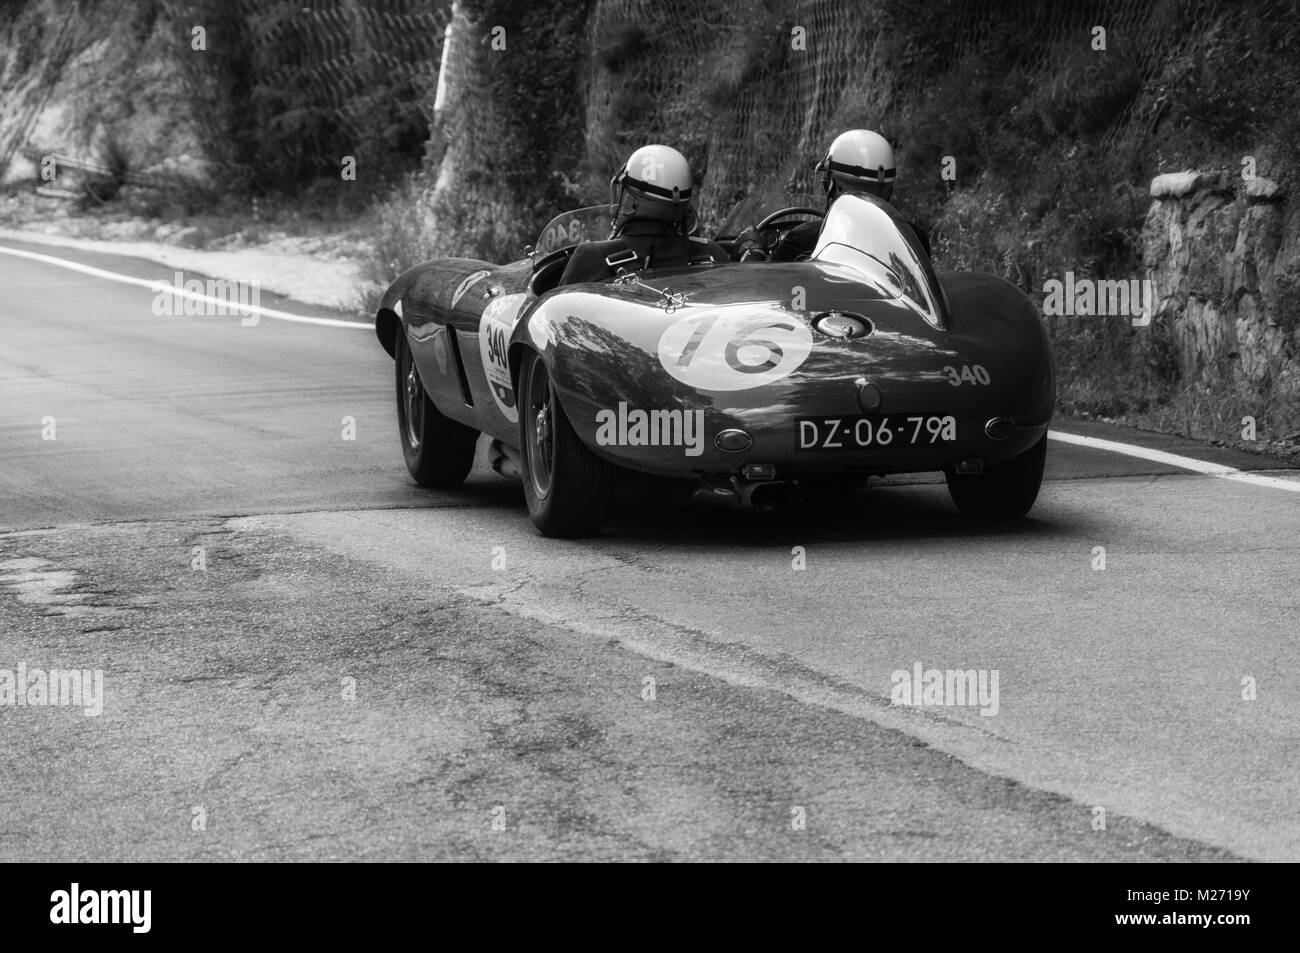 hight resolution of gola del furlo italy may 19 ferrari 750 monza spider scaglietti 1954 on an old racing car in rally mille miglia 2017 the famous italian historical